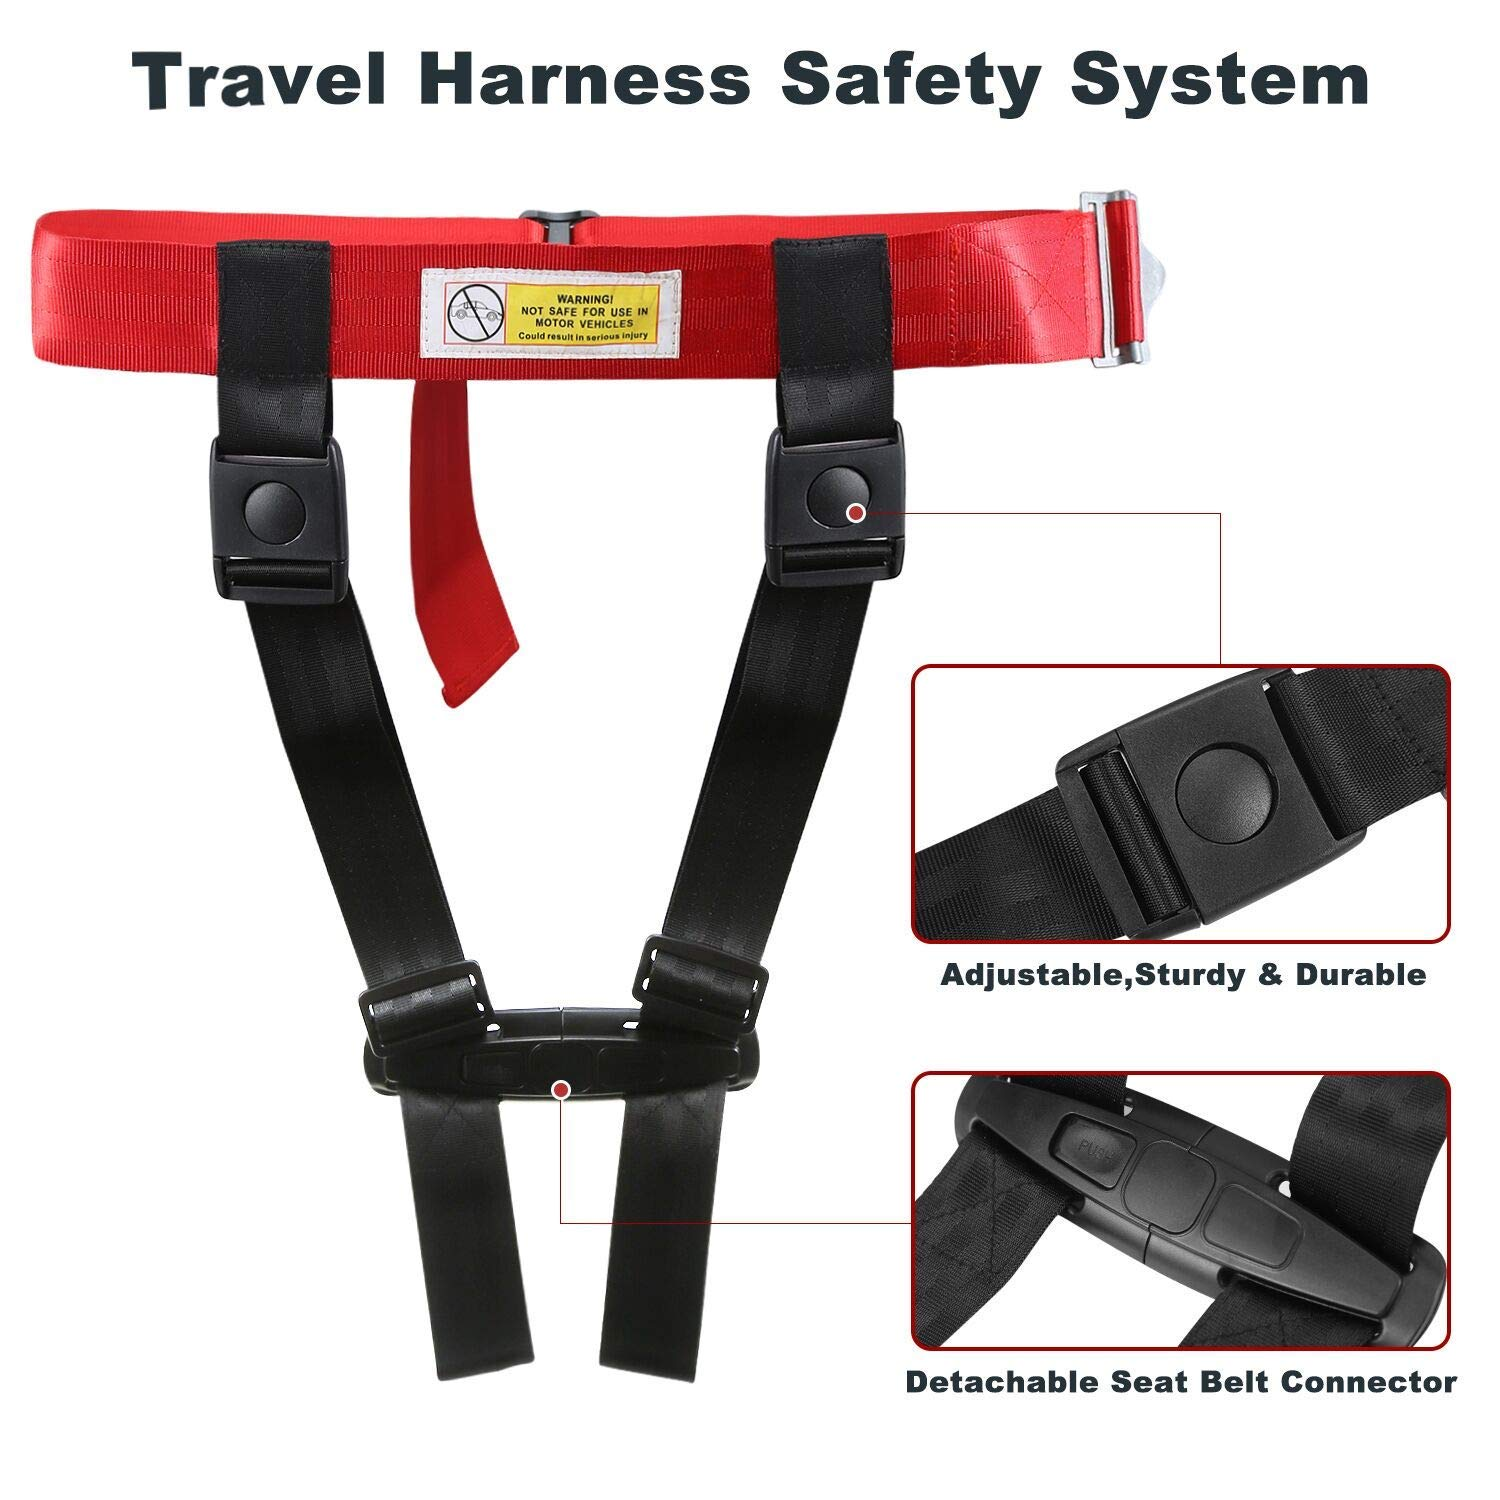 Child Airplane Travel Safety Harness Approved by FAA, Clip Strap Restraint System with Safe Airplane Cares Restraining Fly Travel Plane for Toddler Kids Child Infant by Mestron (Image #5)